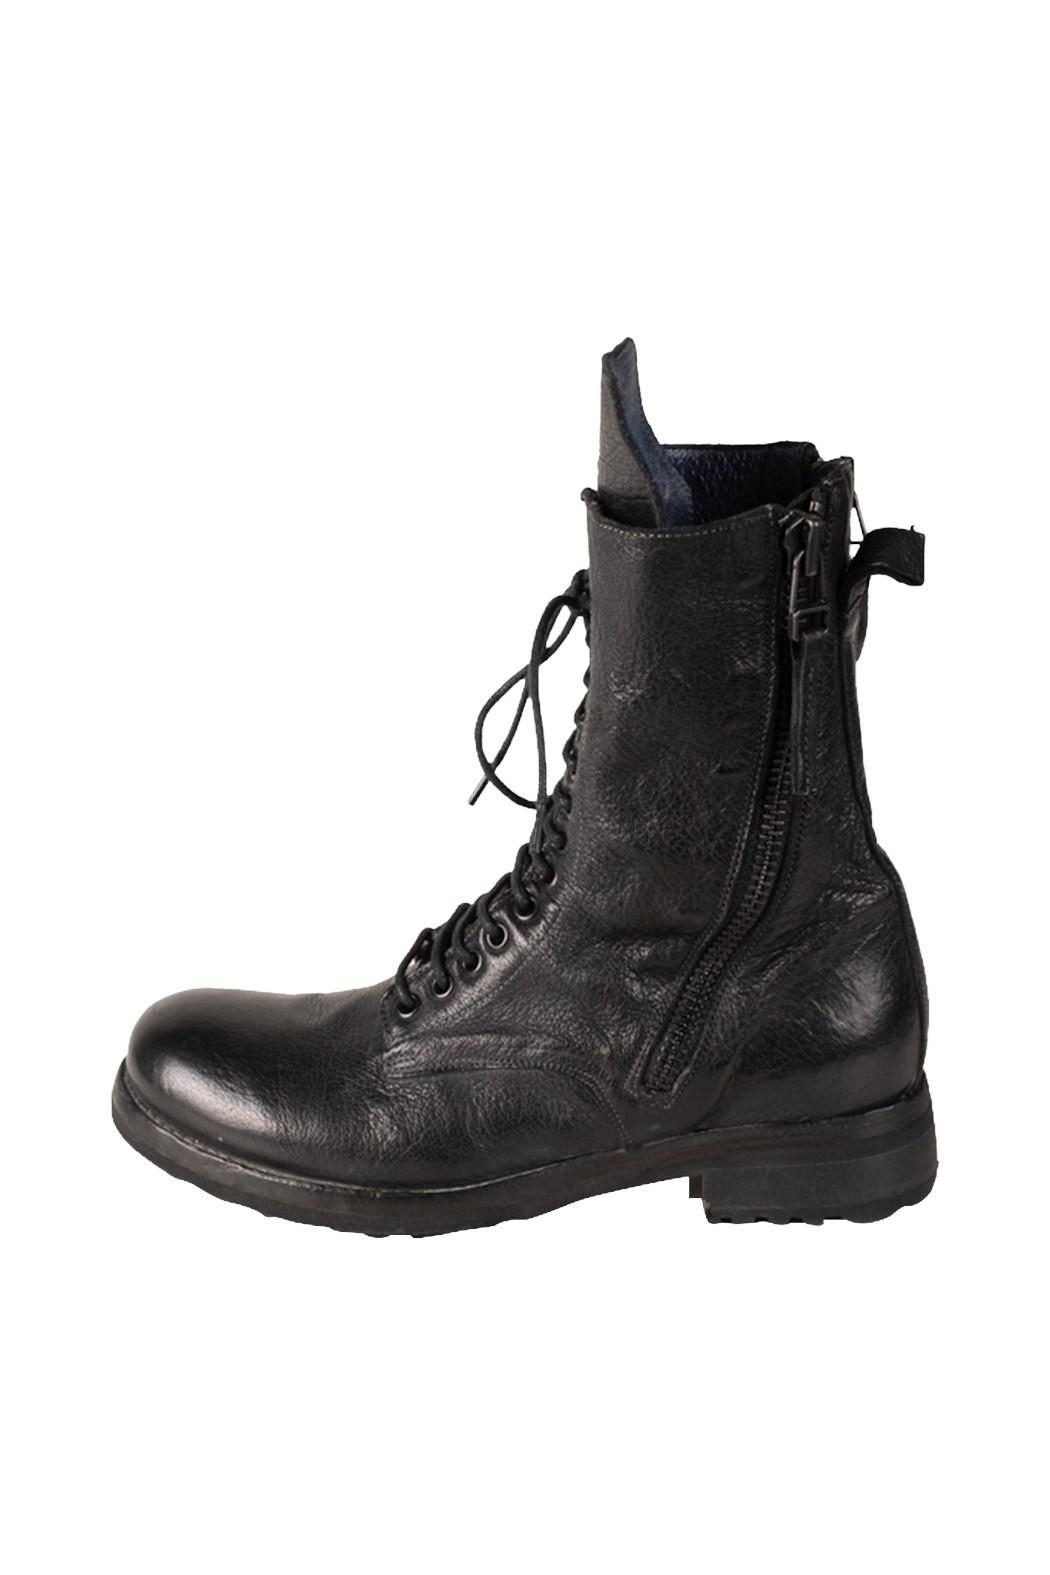 Keep Combat, Laceup, Ankle-Boots - Main Image